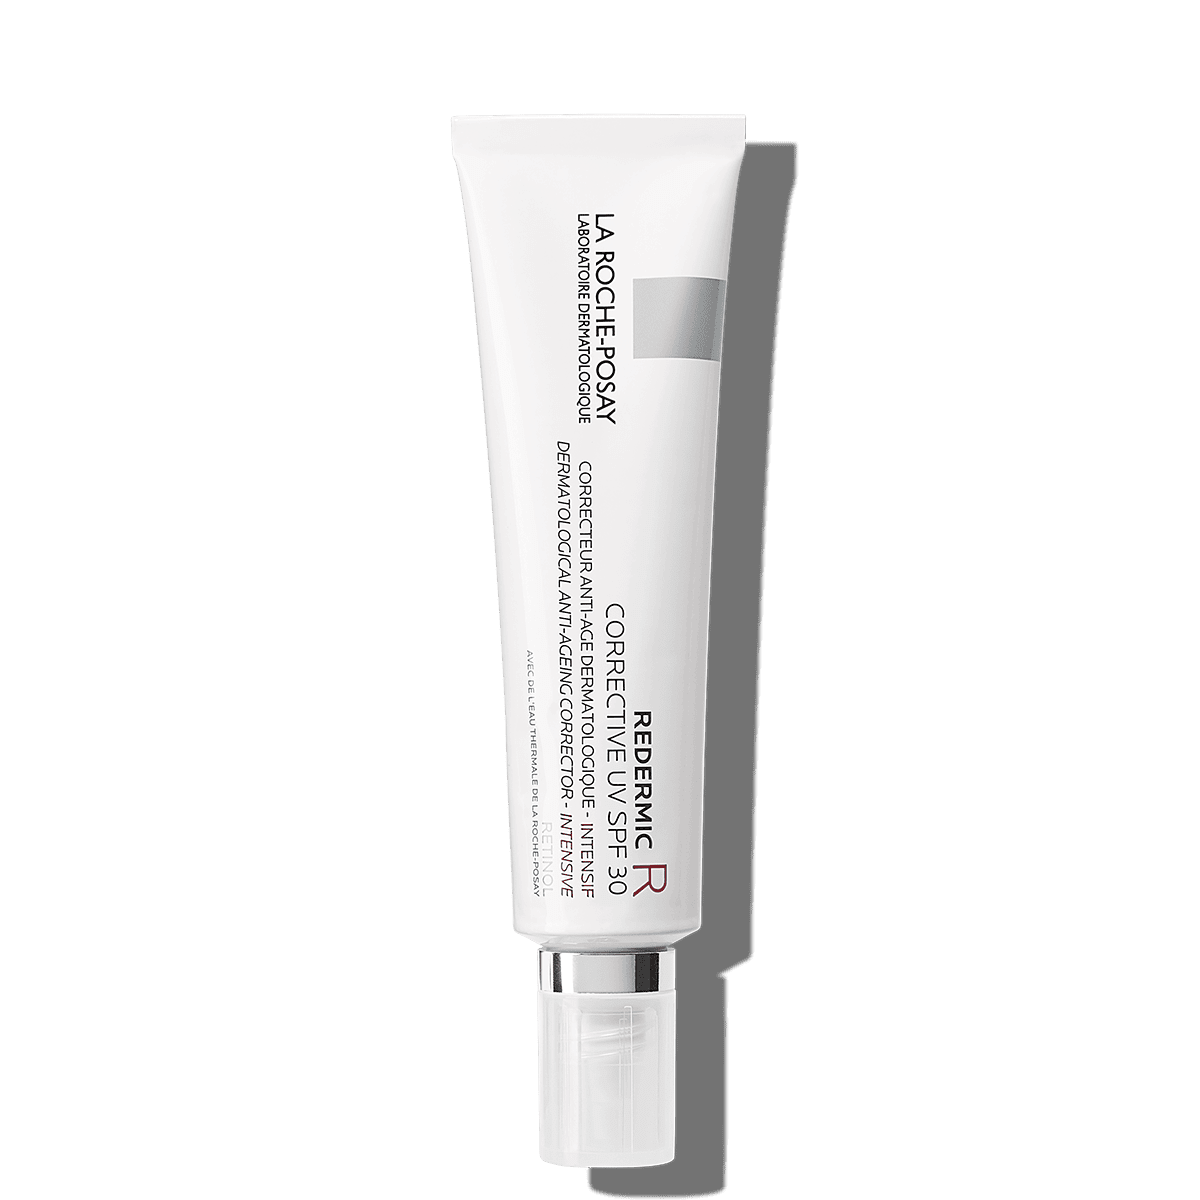 Redermic Retinol Corrective UV Spf30 Concentrate Intensive 40ml Retinol